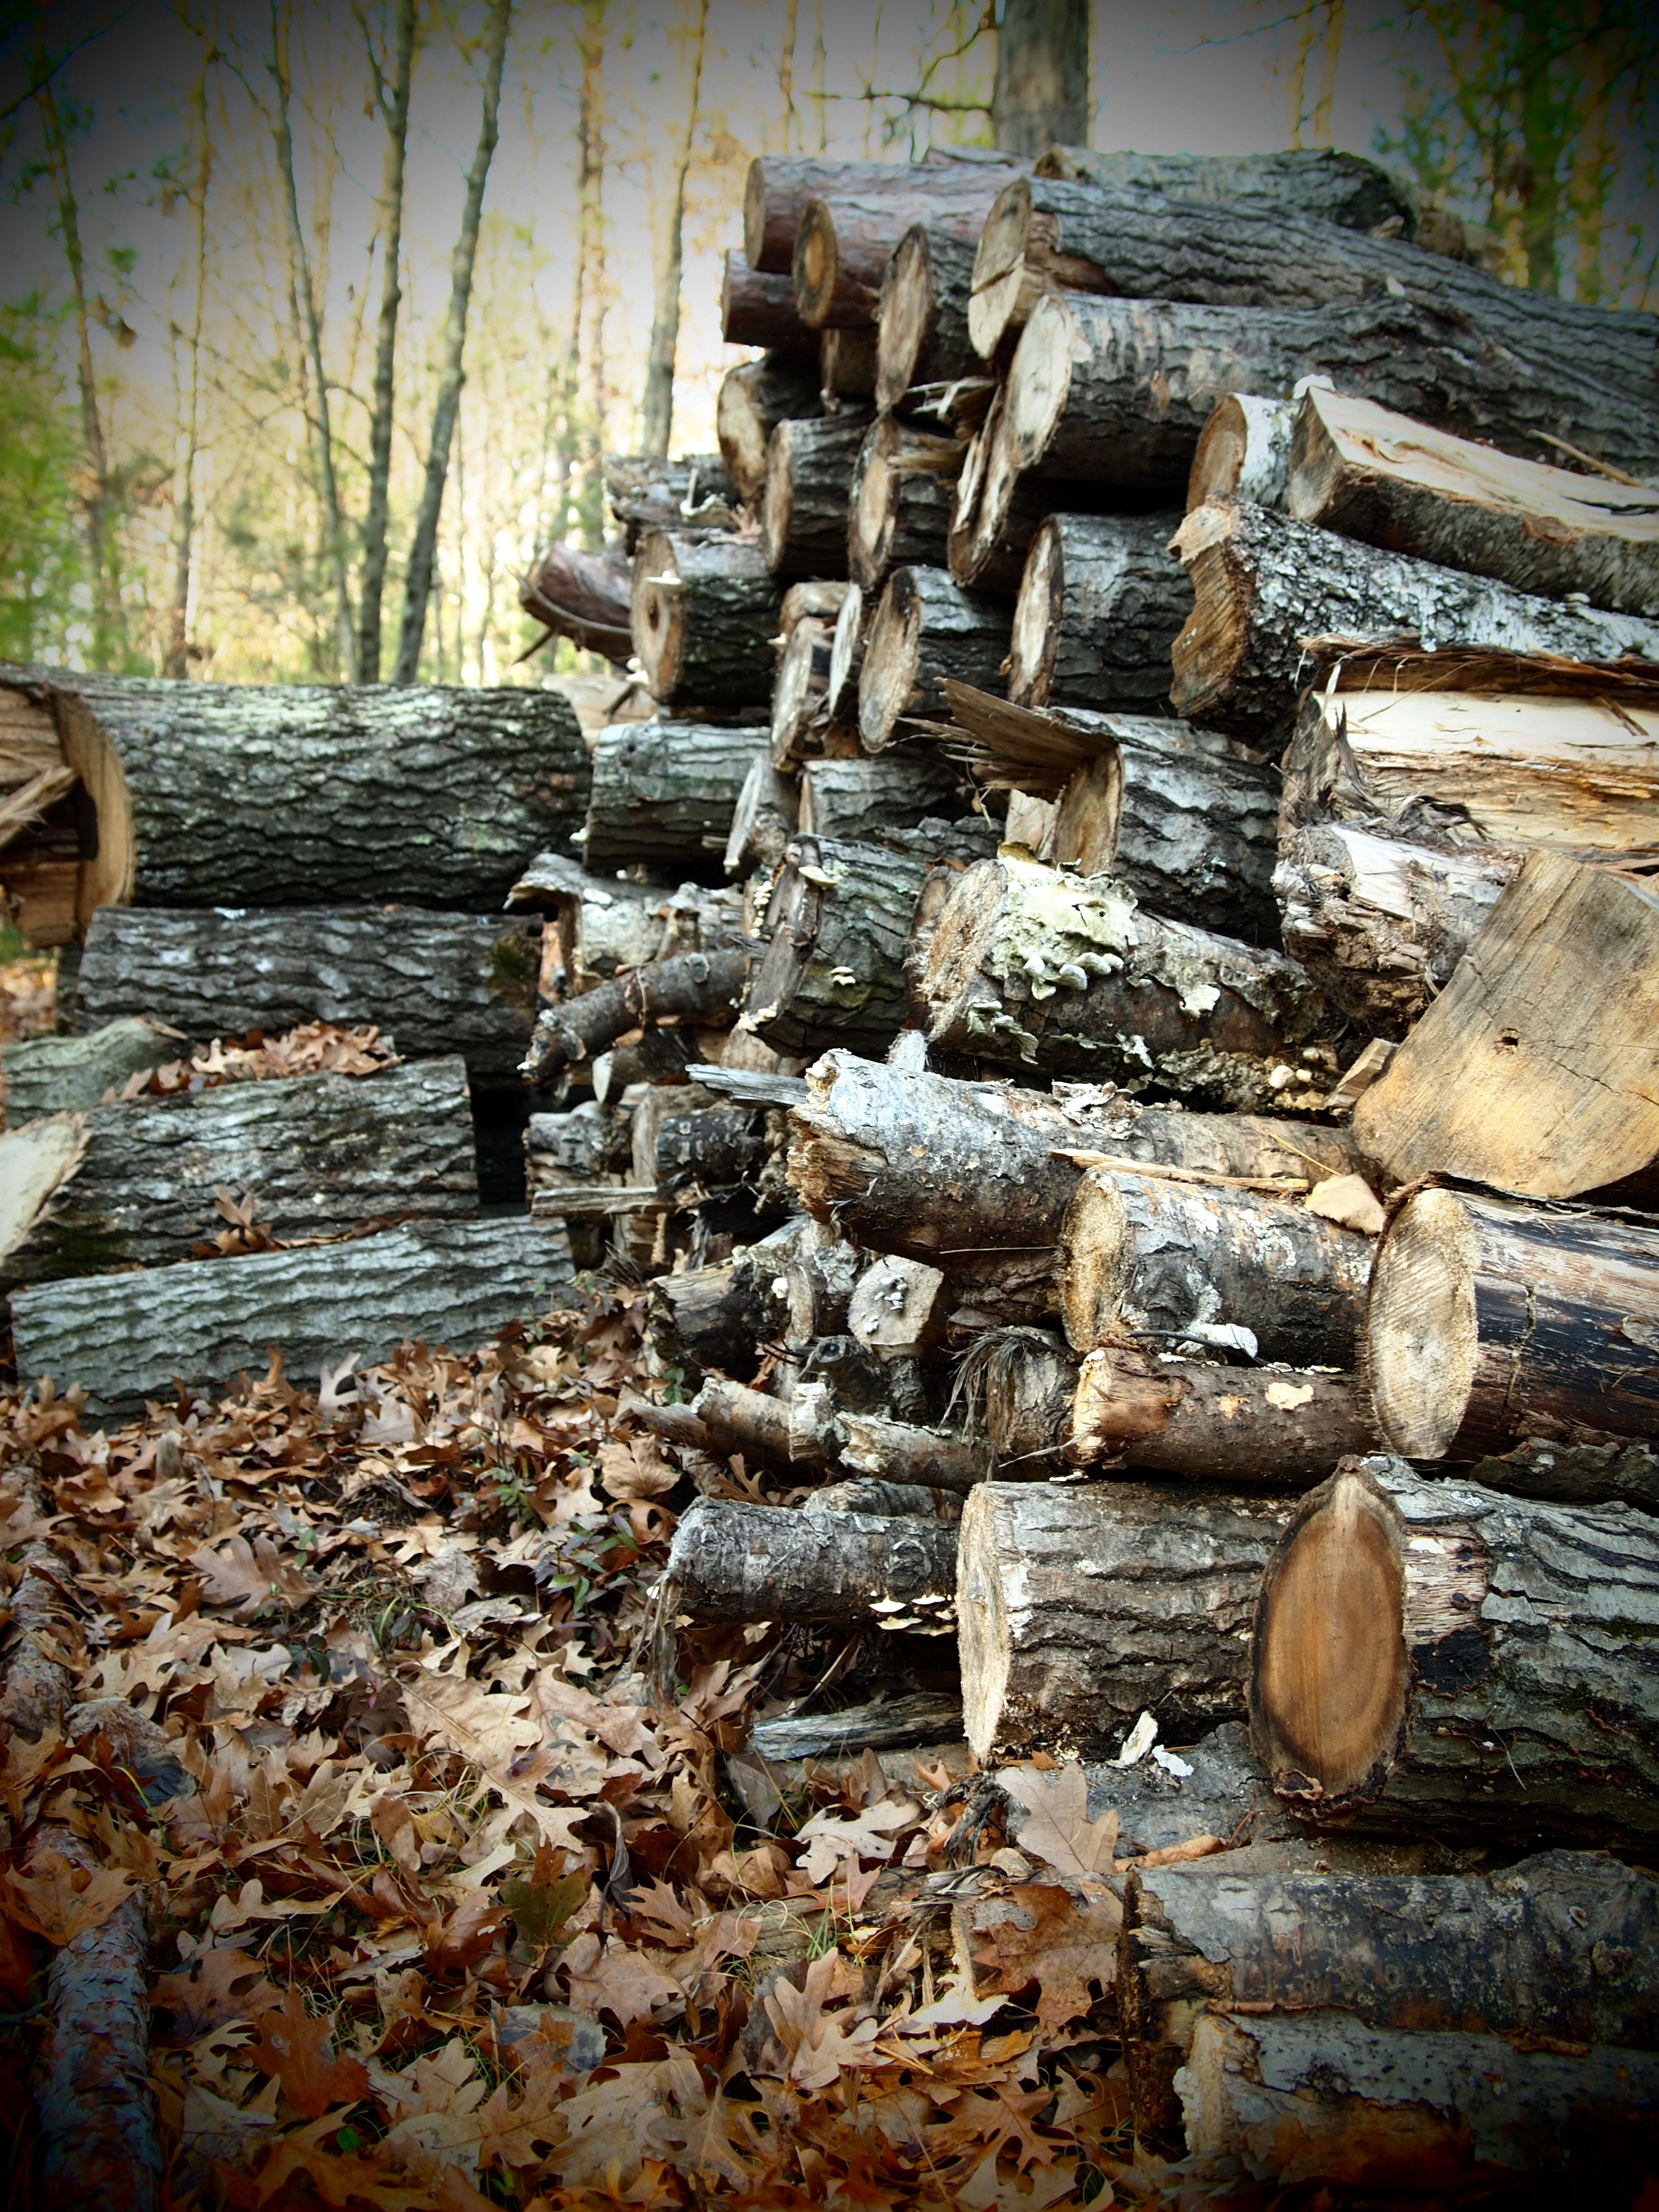 periodic excursions to the woods with Dad and Joel to find firewood.